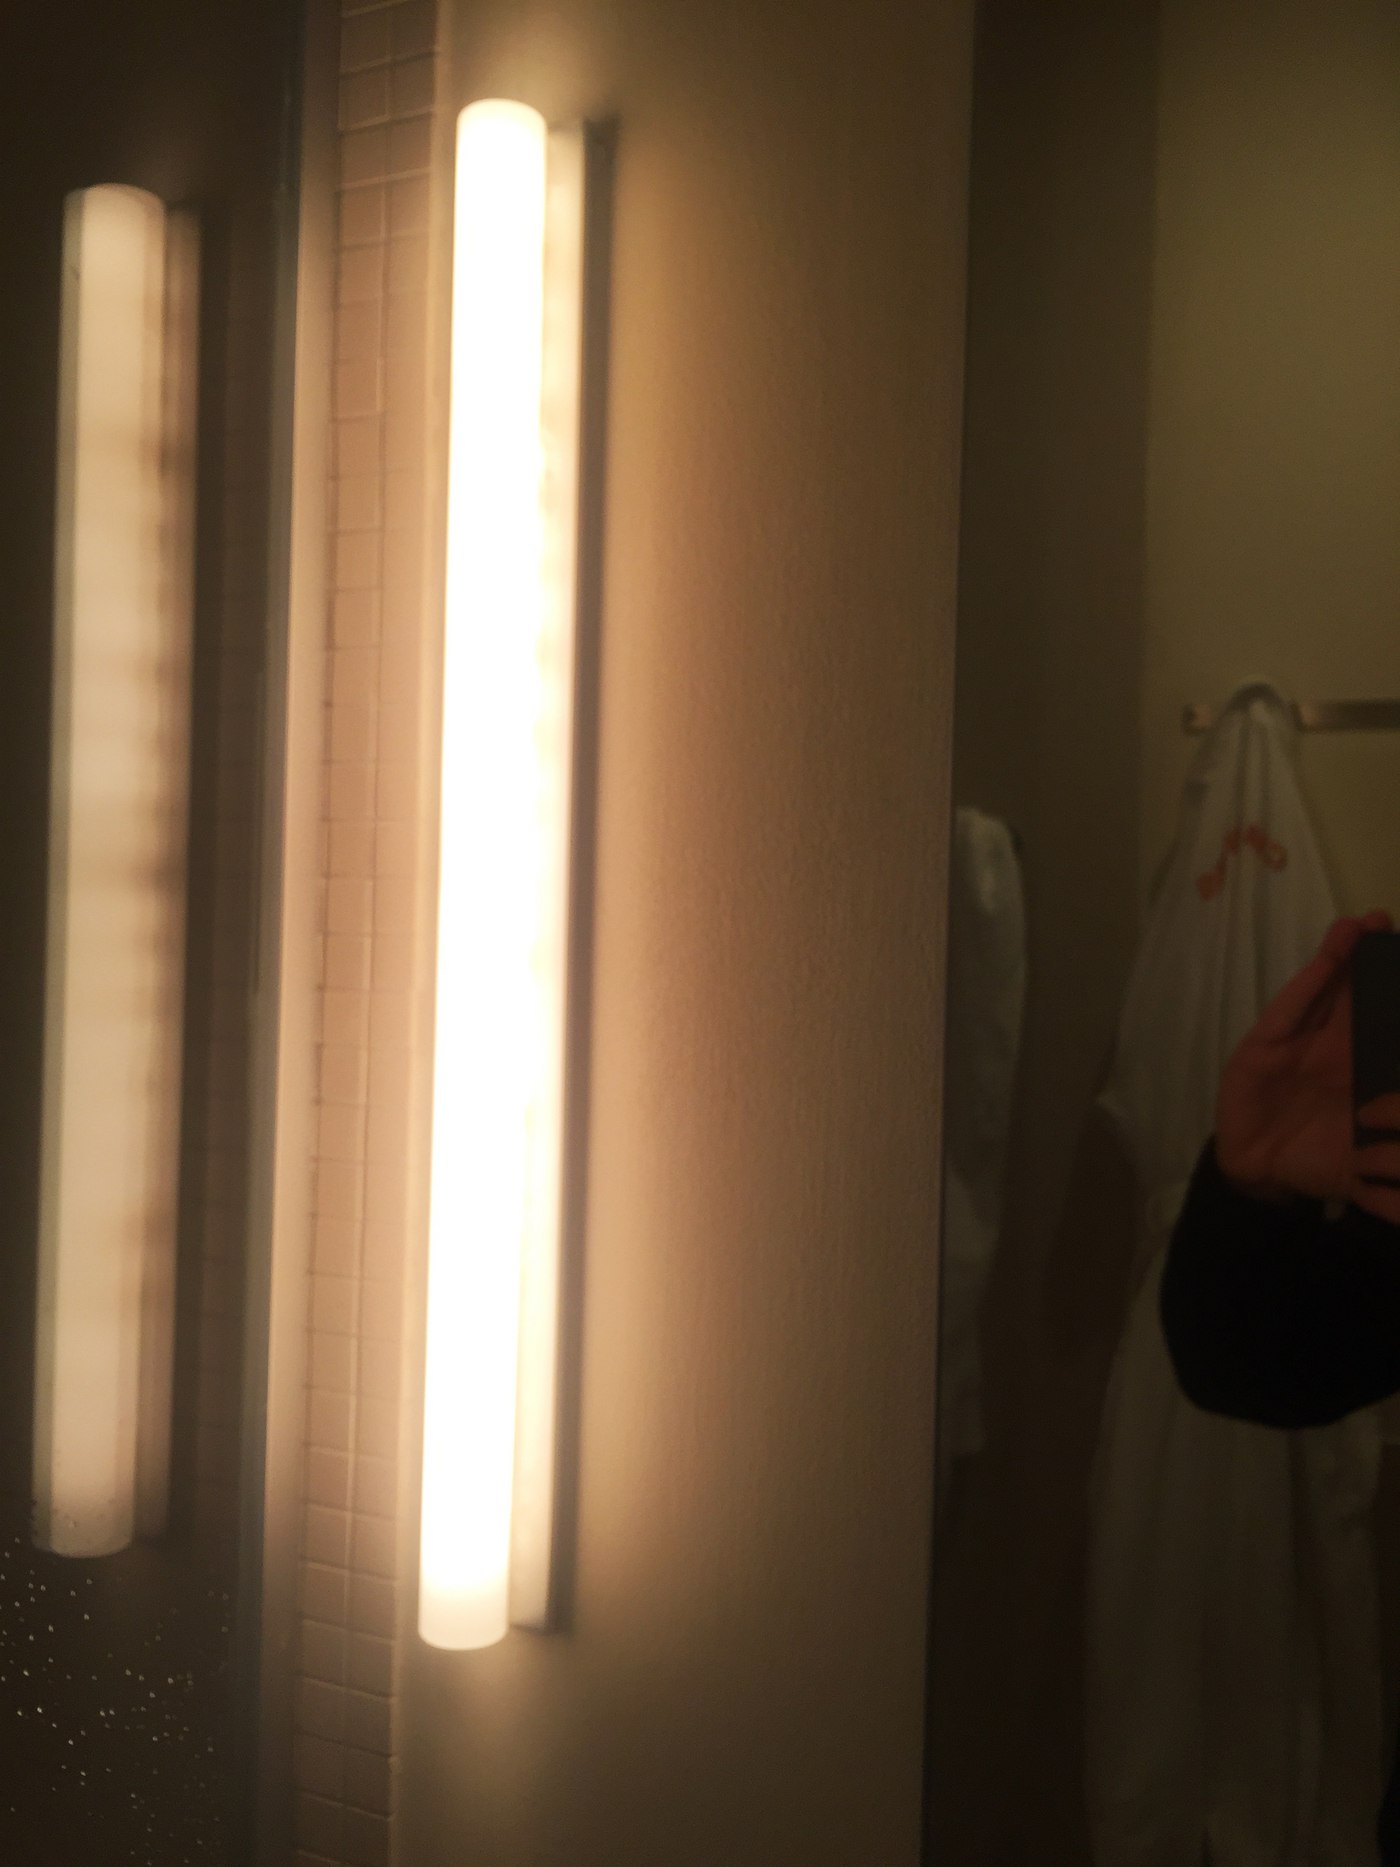 Sconces on either side of the mirror, Chamber Hotel